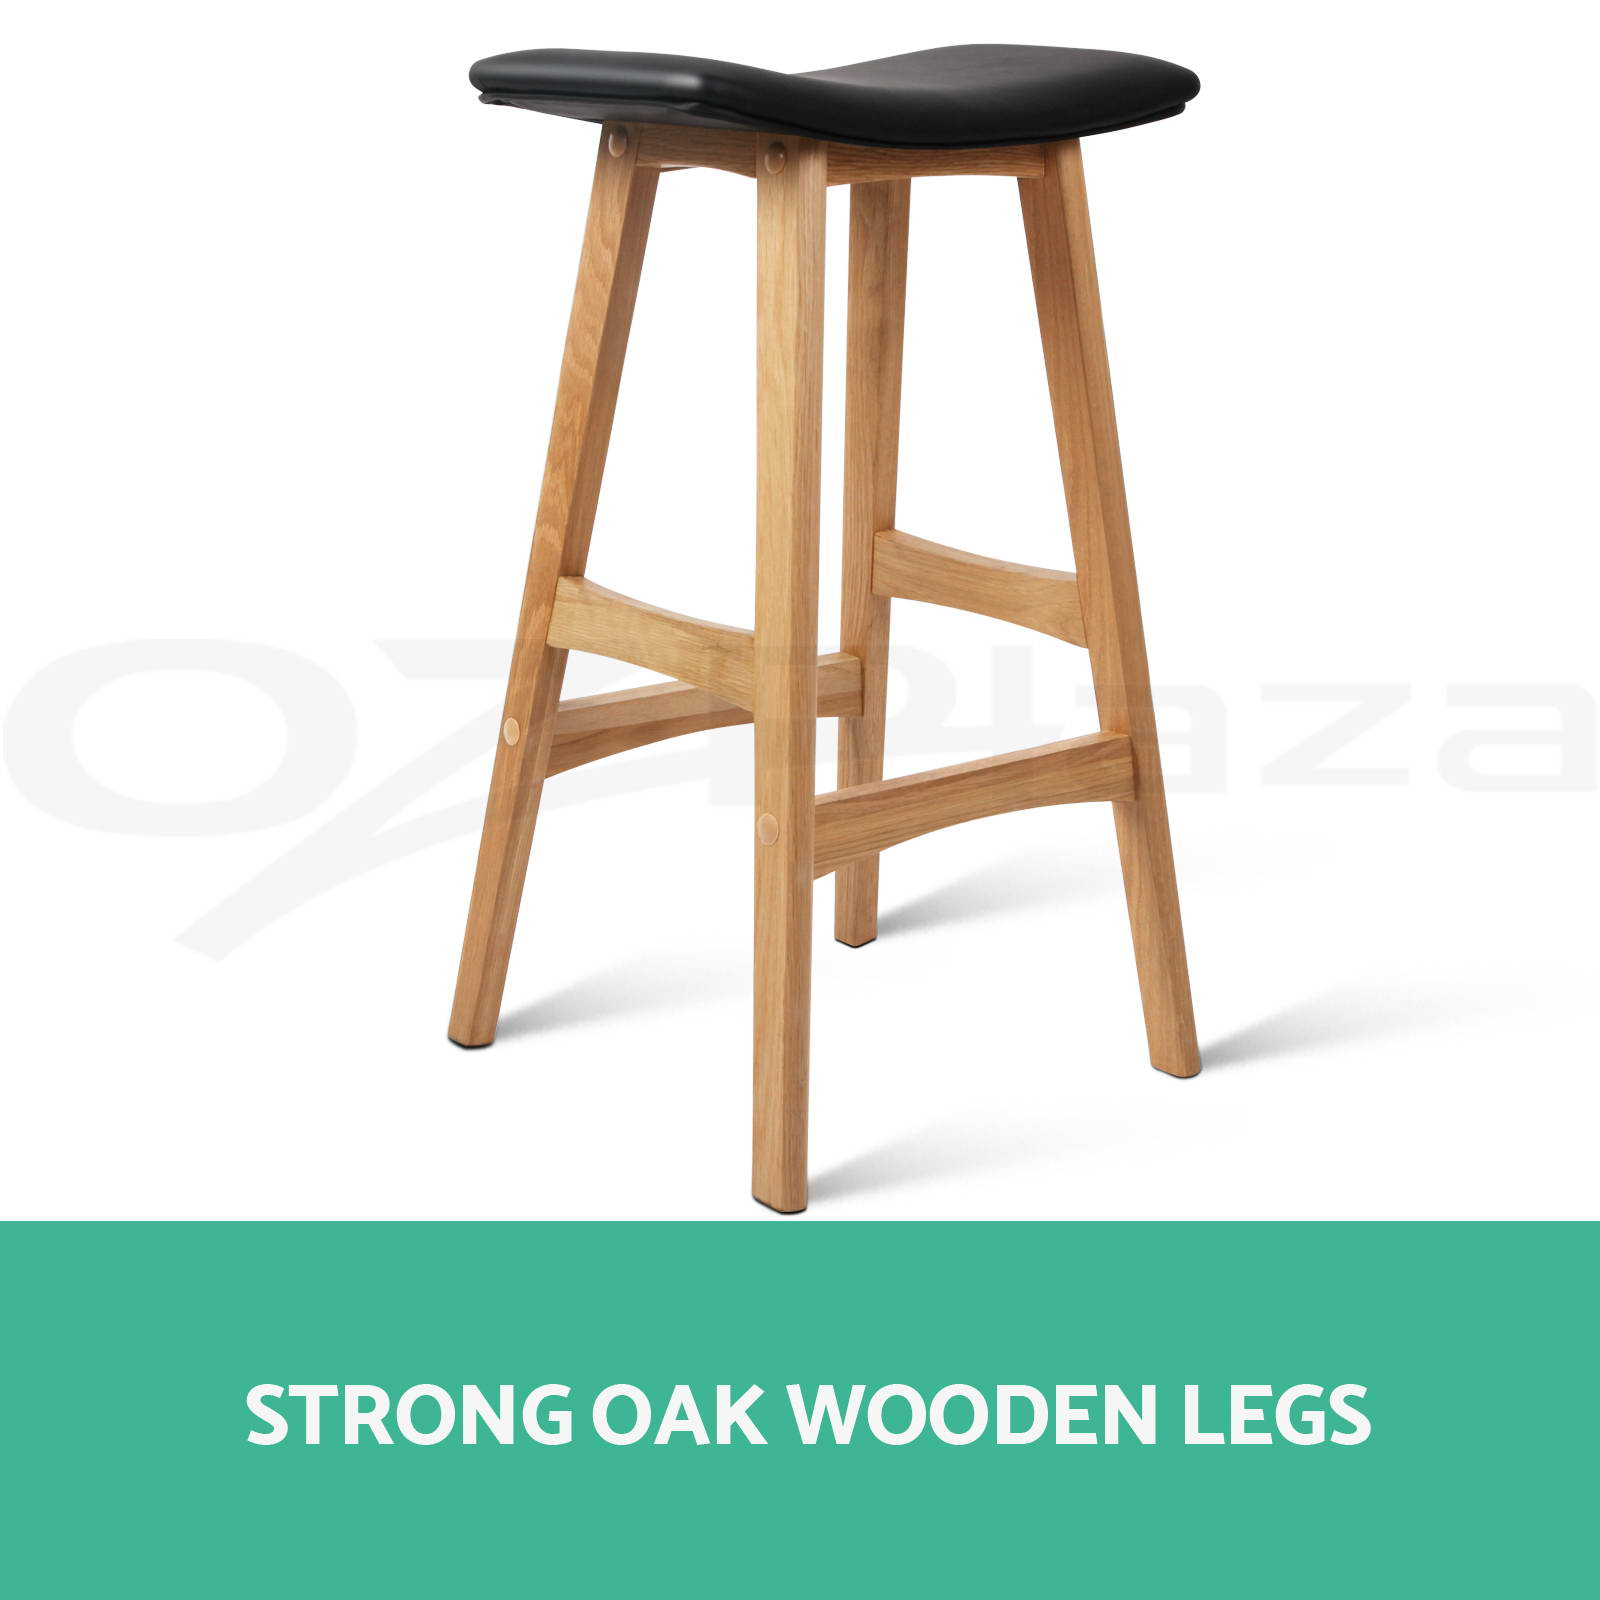 Details About 2x Oak Wood Bar Stools Wooden Dining Chairs Kitchen Side . Full resolution  image, nominally Width 1600 Height 1600 pixels, image with #996932.